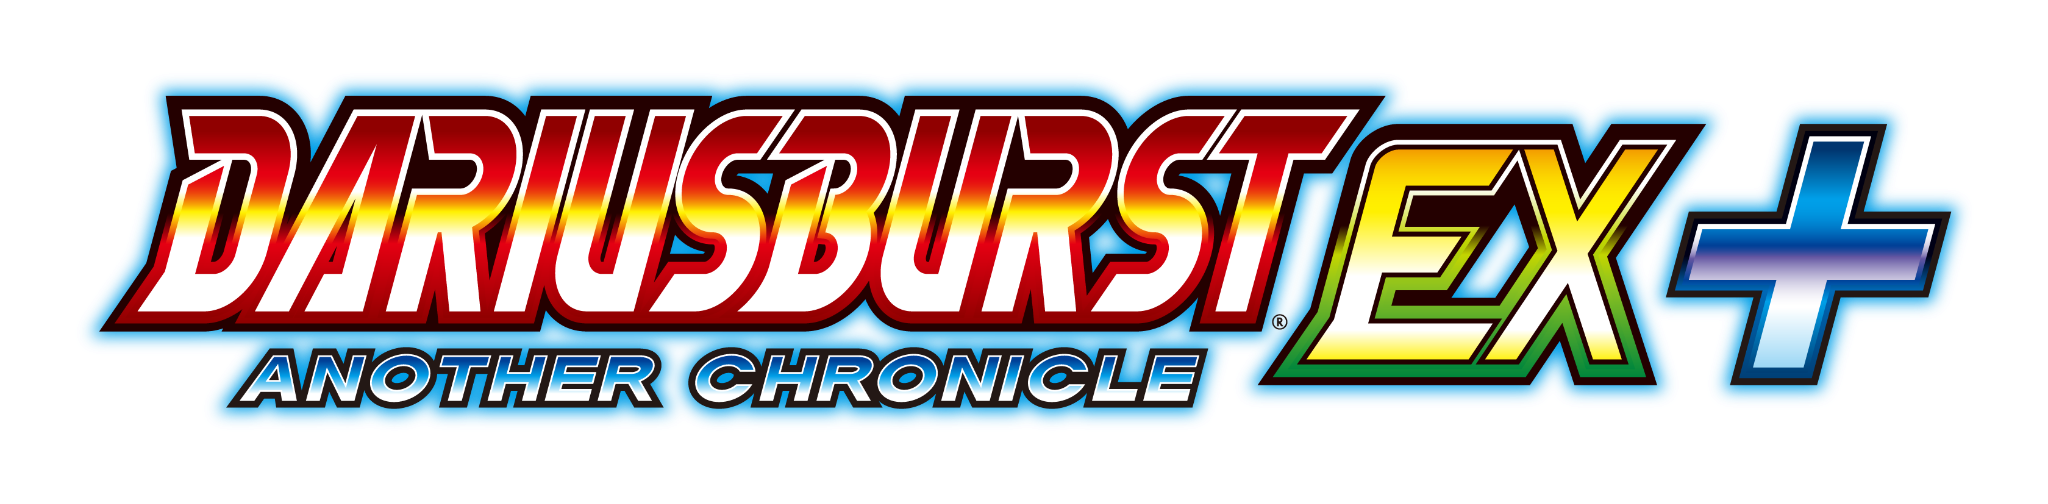 DariusBurst: Another Chronicle EX + uscirà a giugno per PS4 e Switch